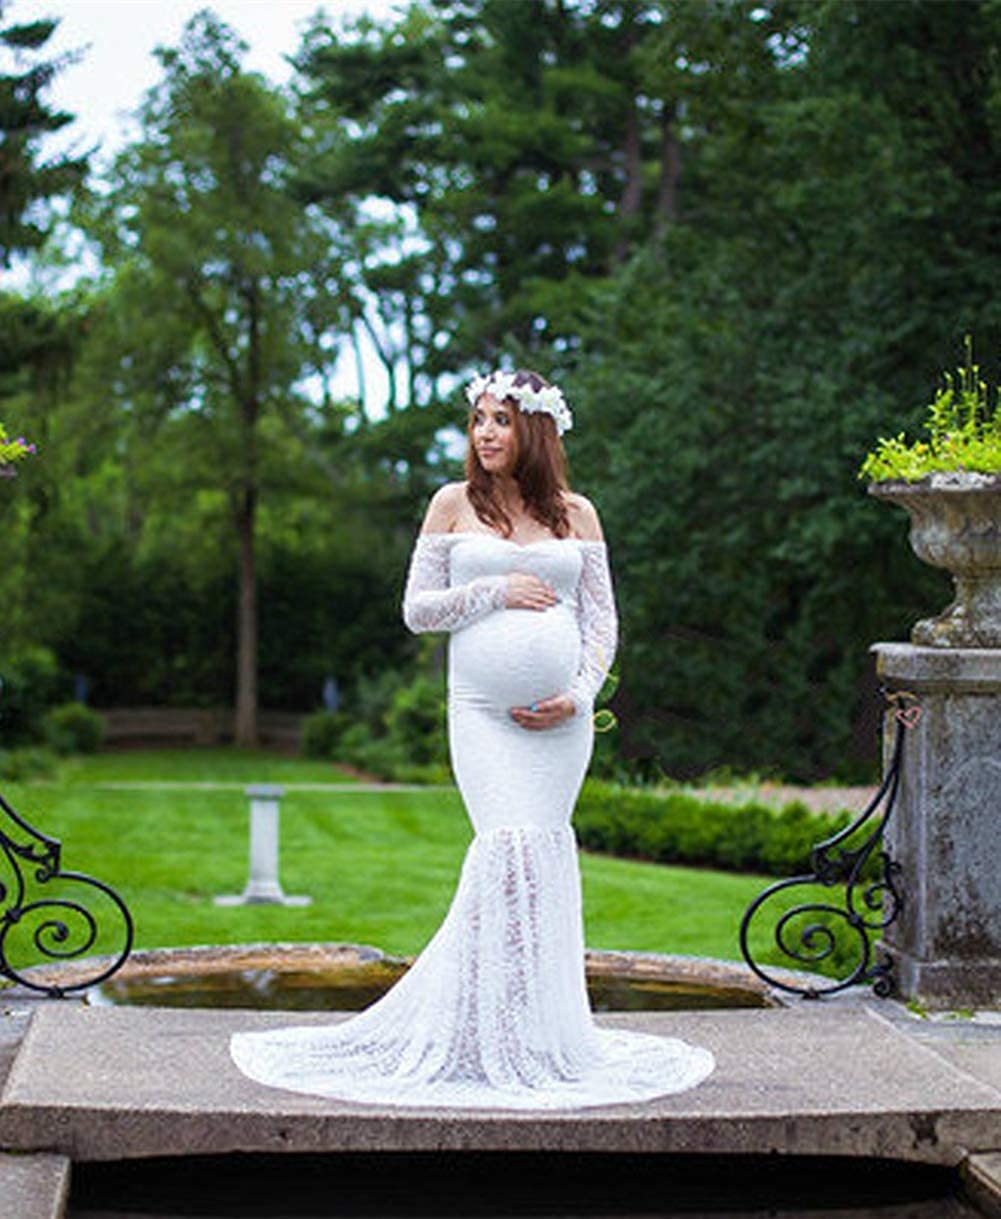 ZIUMUDY Maternity Lace Fitted Gown Long Sleeve Maxi Mermaid Photography Dress Baby Shower Photo Shoot